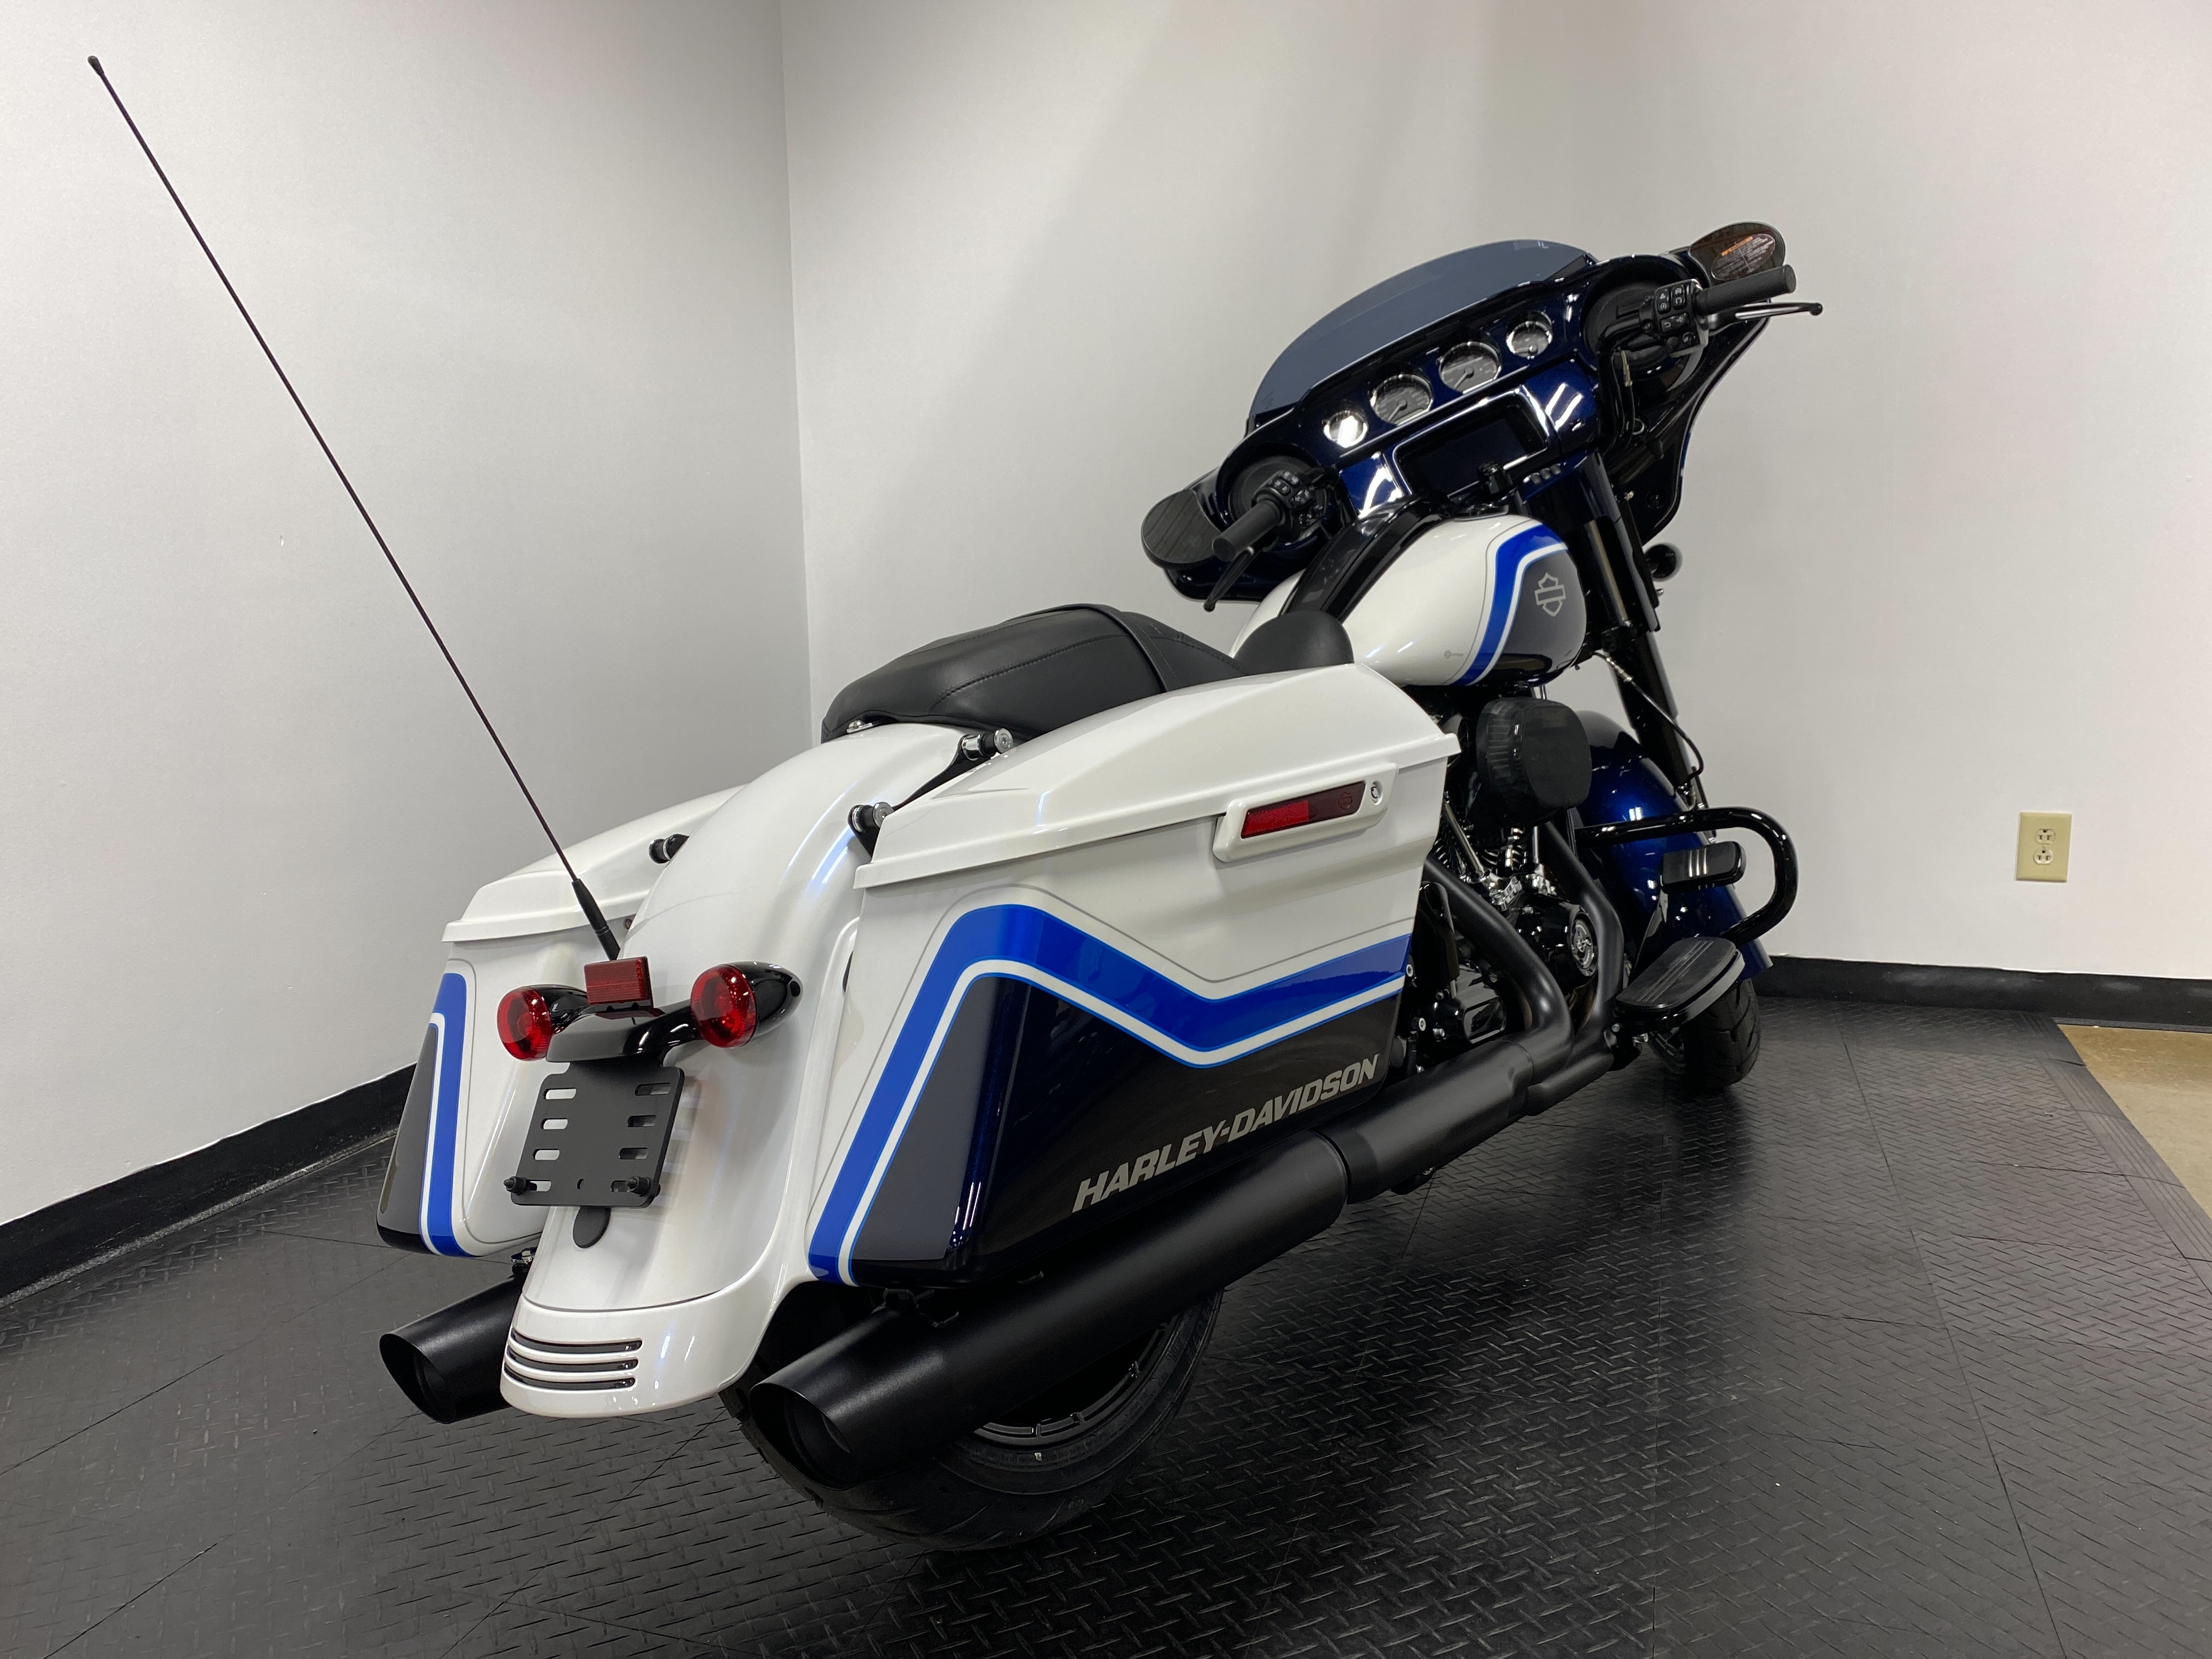 2021 Harley-Davidson Grand American Touring Street Glide Special at cannonball harley-davidson